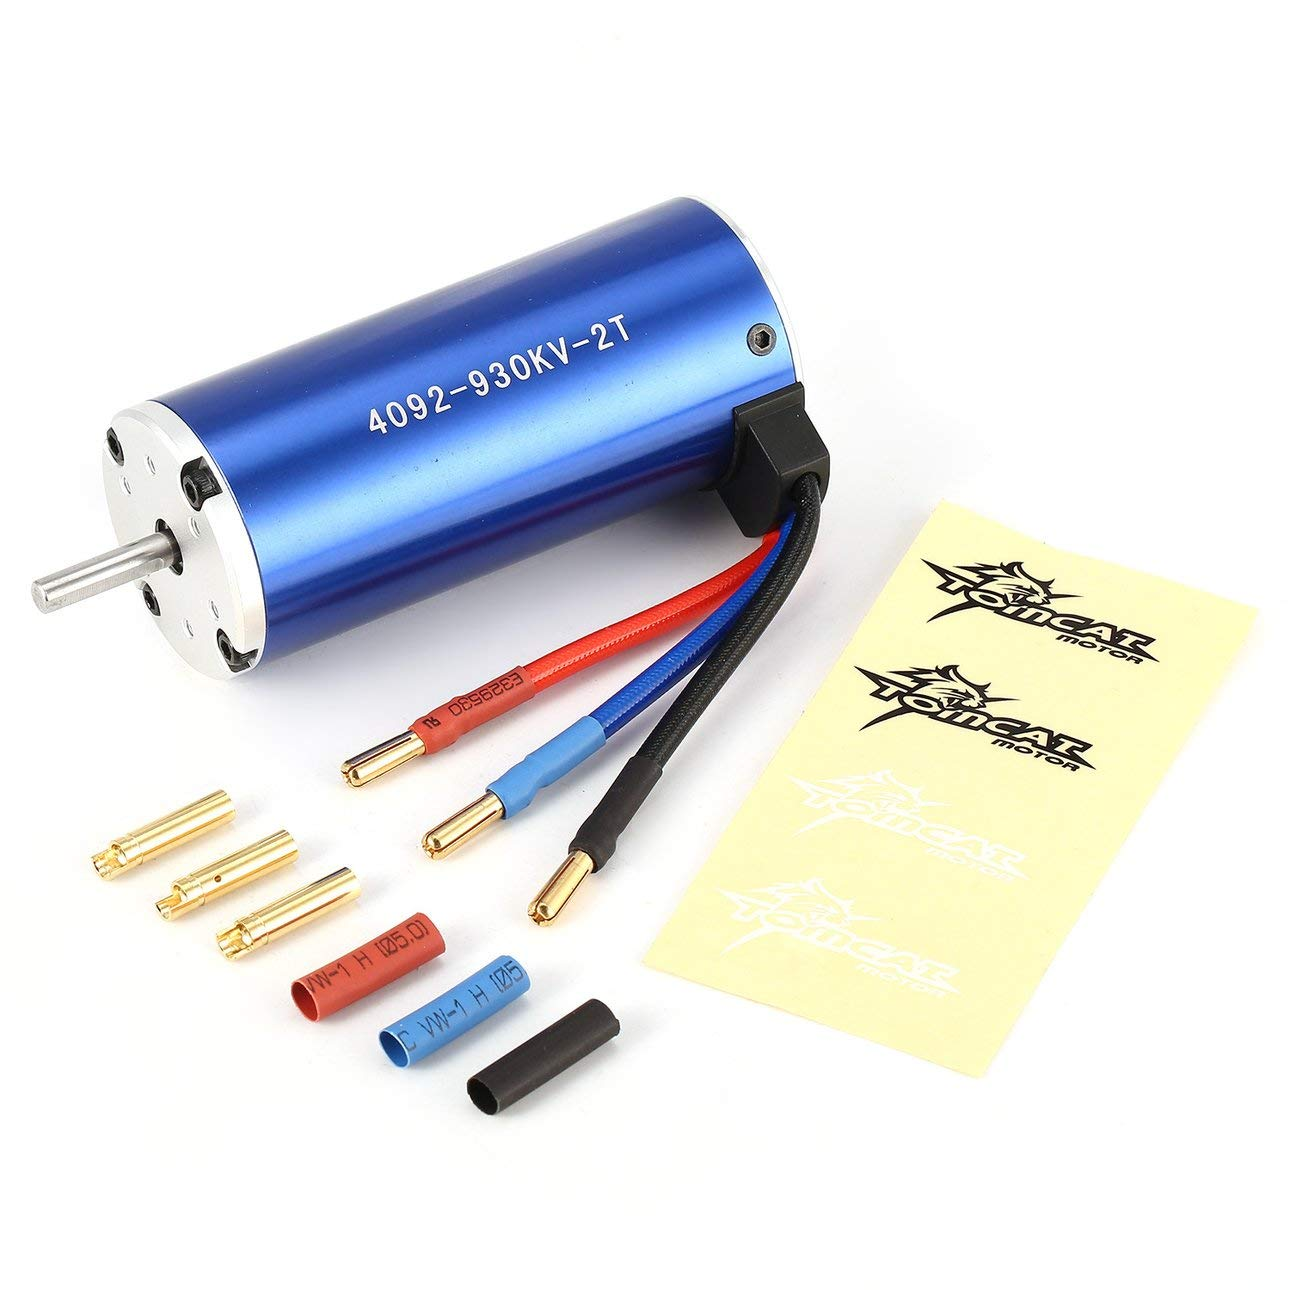 Liobaba TC-CY 4092 2T KV930 5mm Sensorless Brushless Motor 1/8 Bigfoot RC Car Model Spare Parts Accessories Component